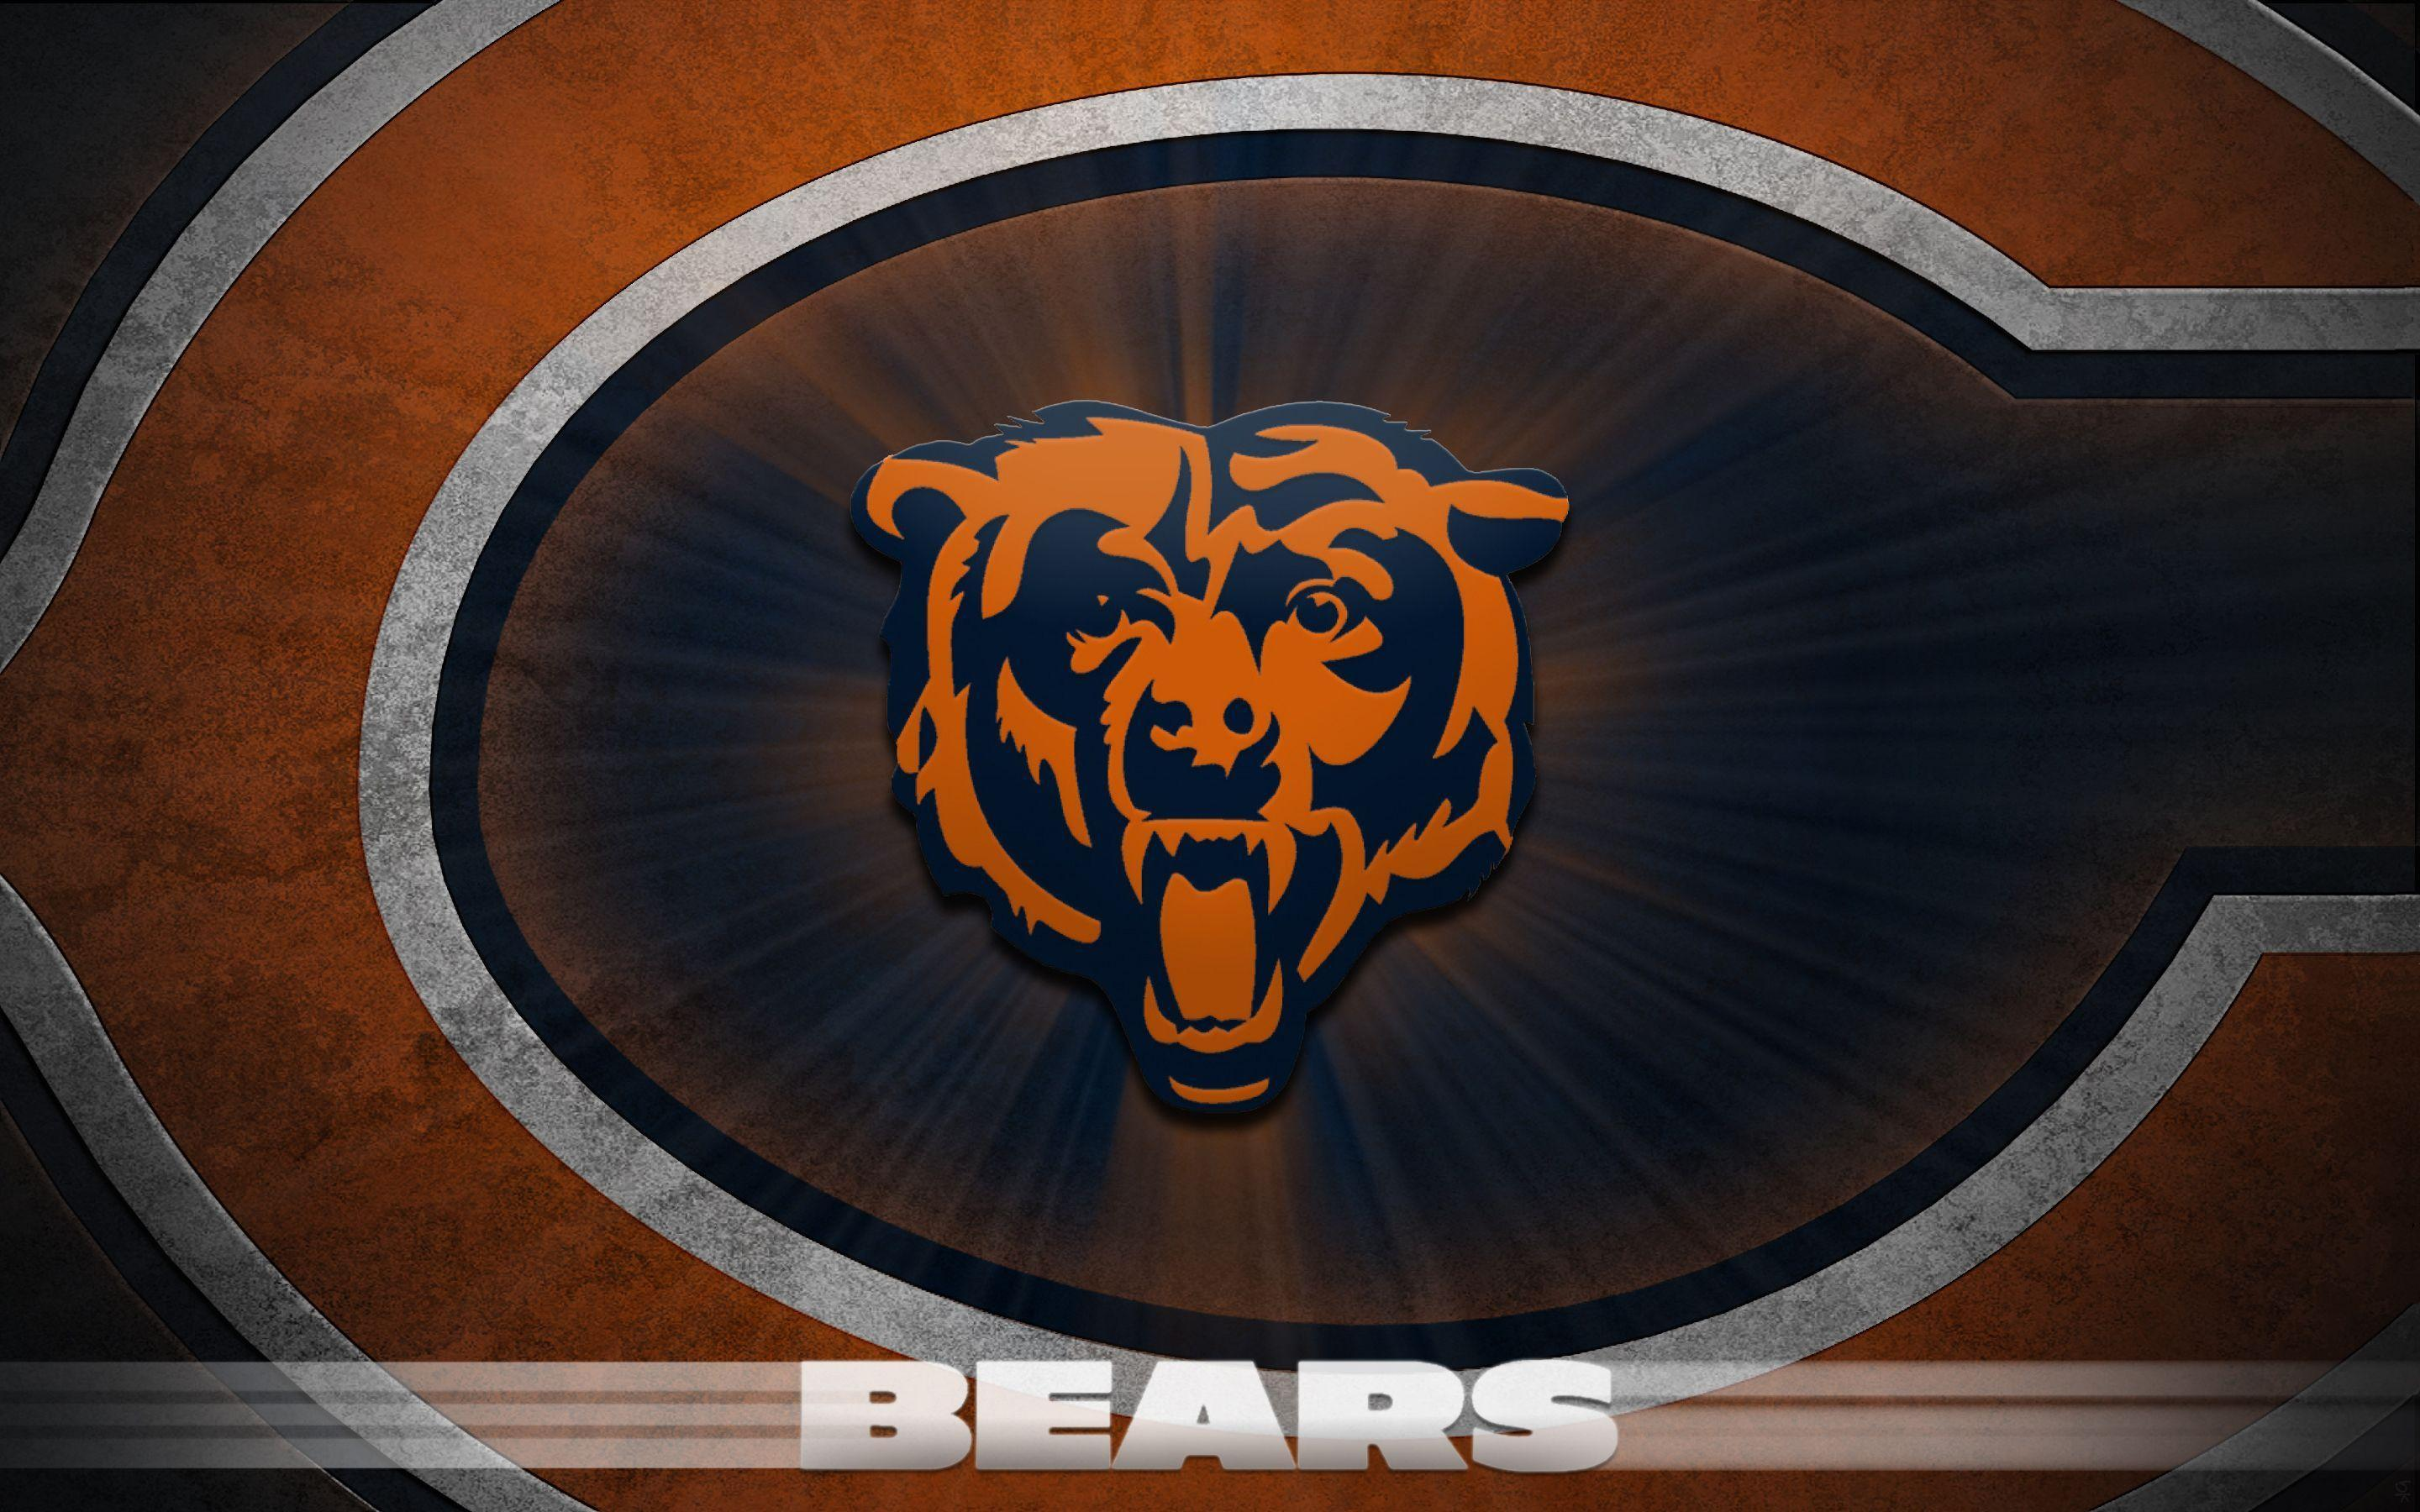 Chicago Sports Wallpaper Iphone 6: Chicago Bears Wallpapers 2017